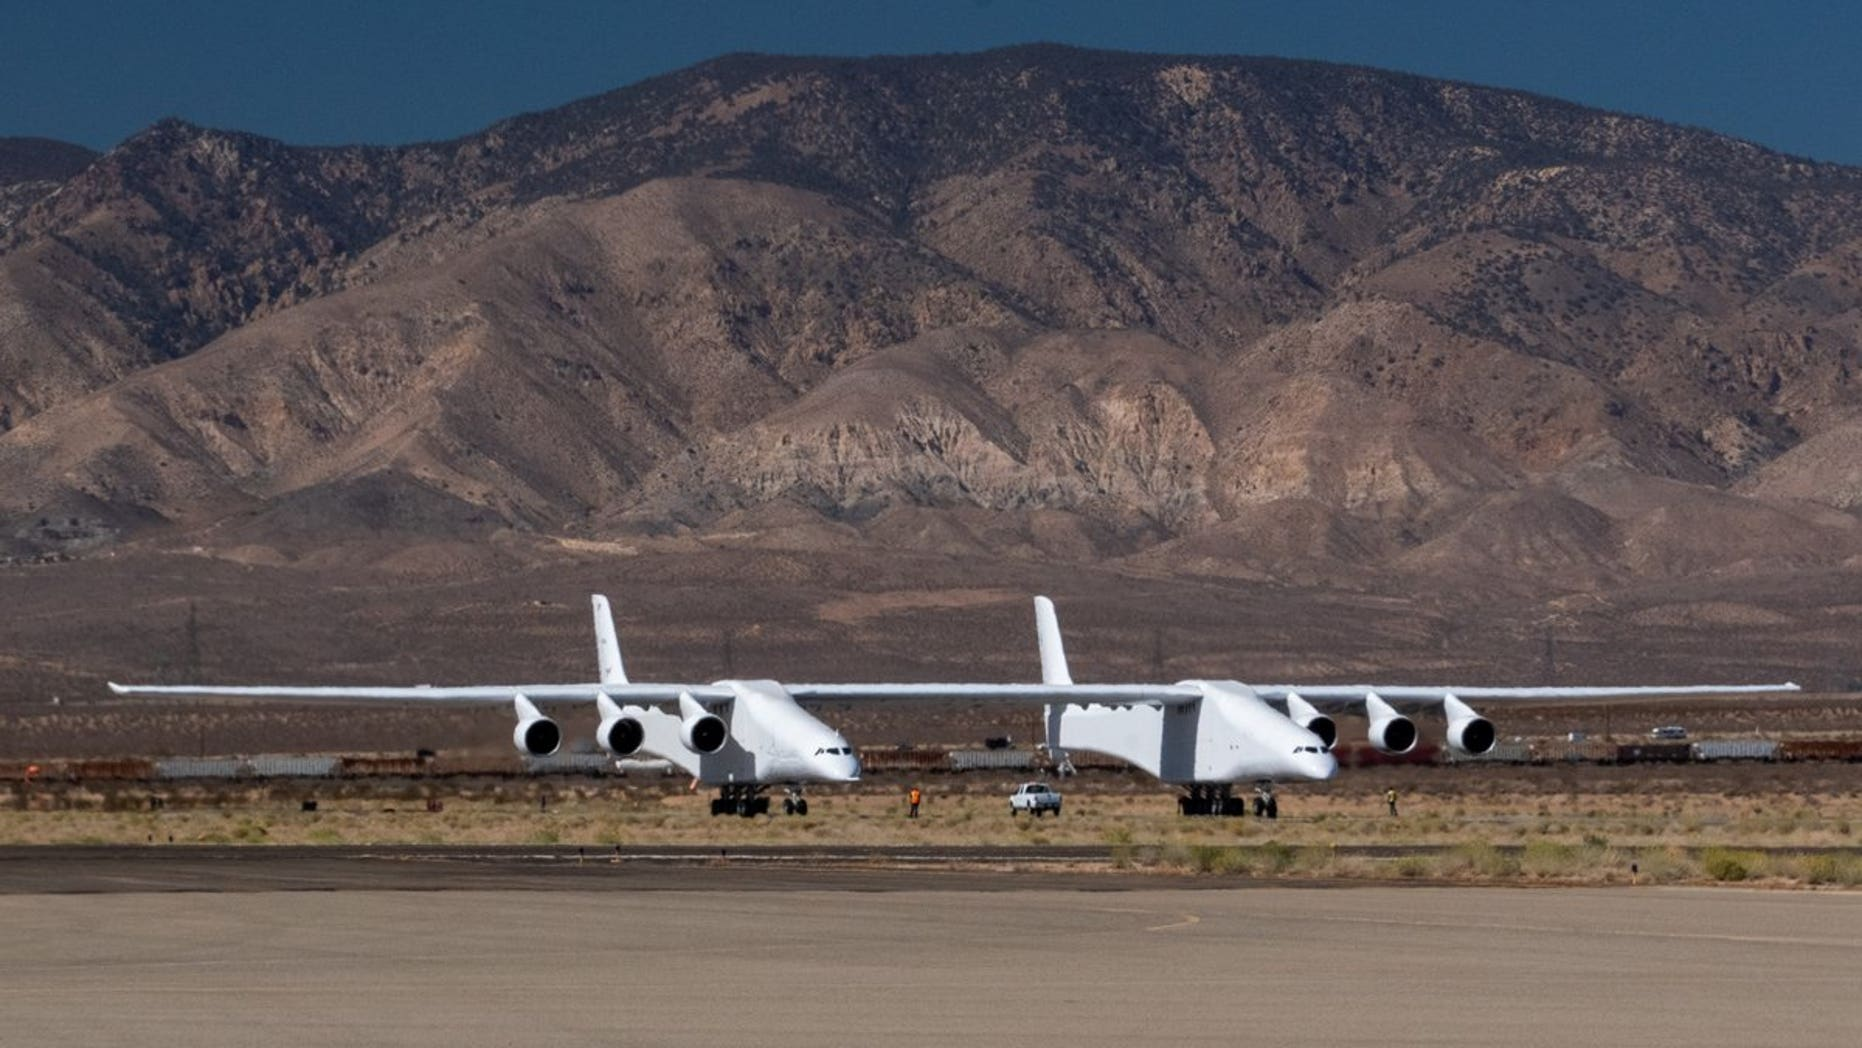 """Stratolaunch Systems' airplane, the biggest aircraft ever built, performed a """"medium-speed taxi test"""" at California's Mojave Air and Space Port in October 2018."""